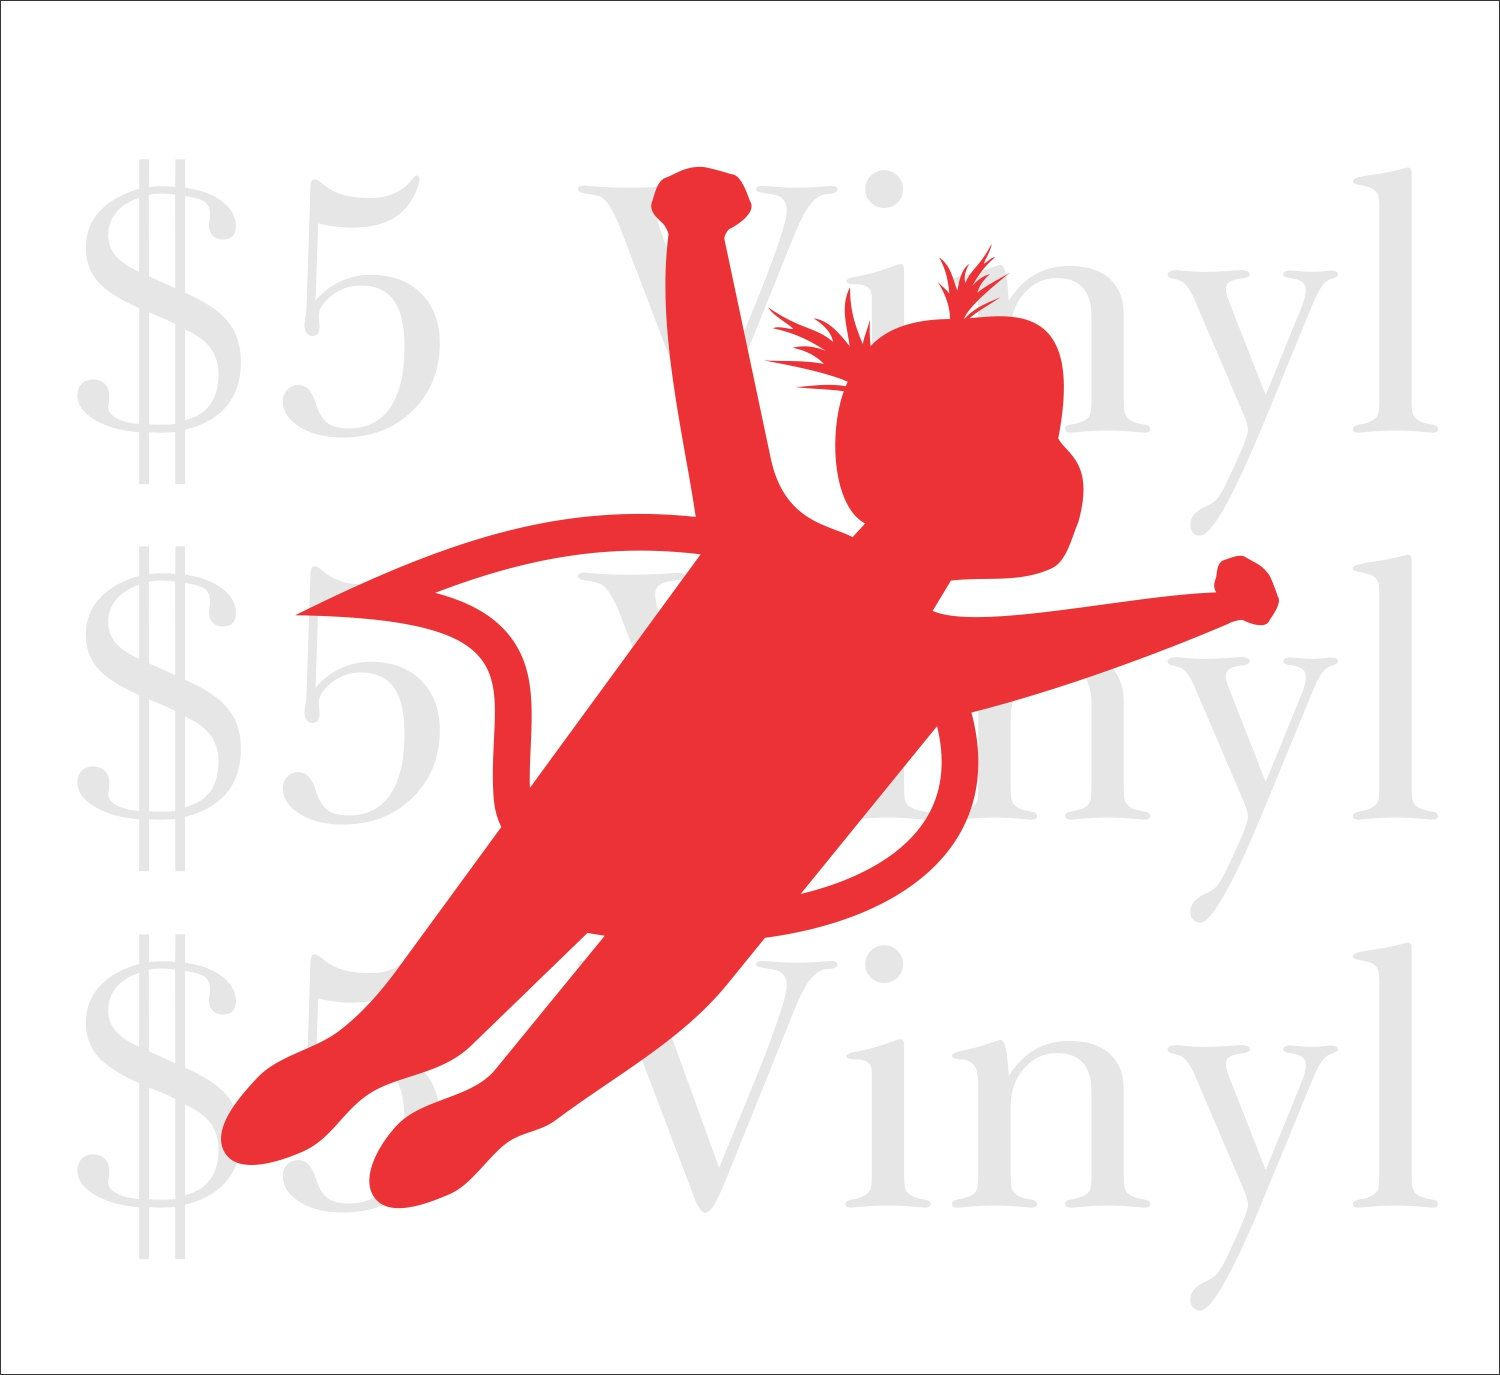 Super babygirl flying vinyl car decal superman sticker superfamily decal window decal superman family pinned by pin4etsy com